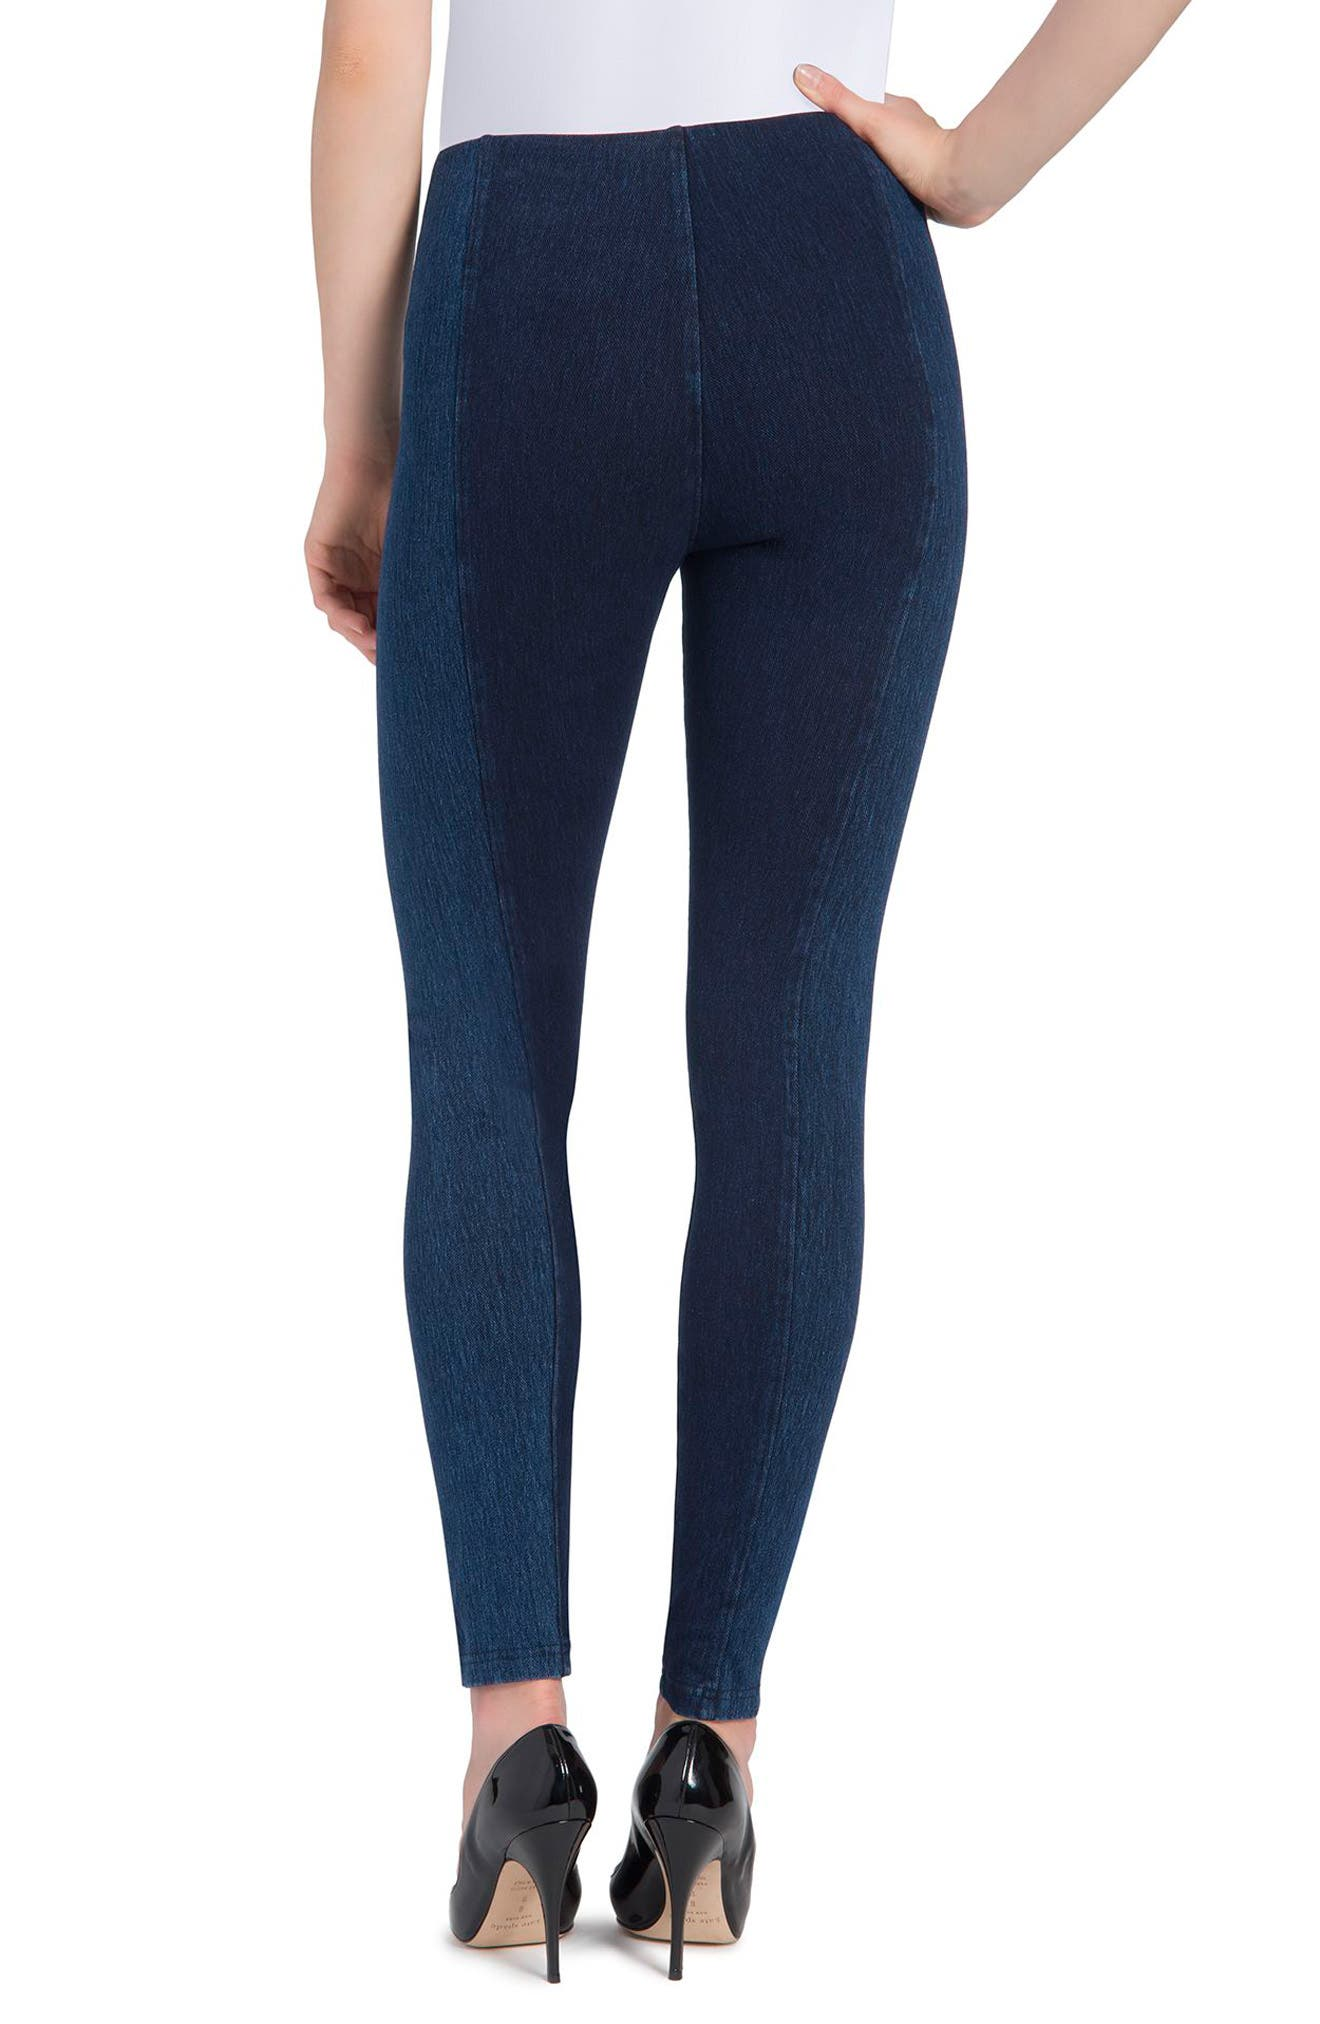 Marley Denim Leggings,                             Alternate thumbnail 4, color,